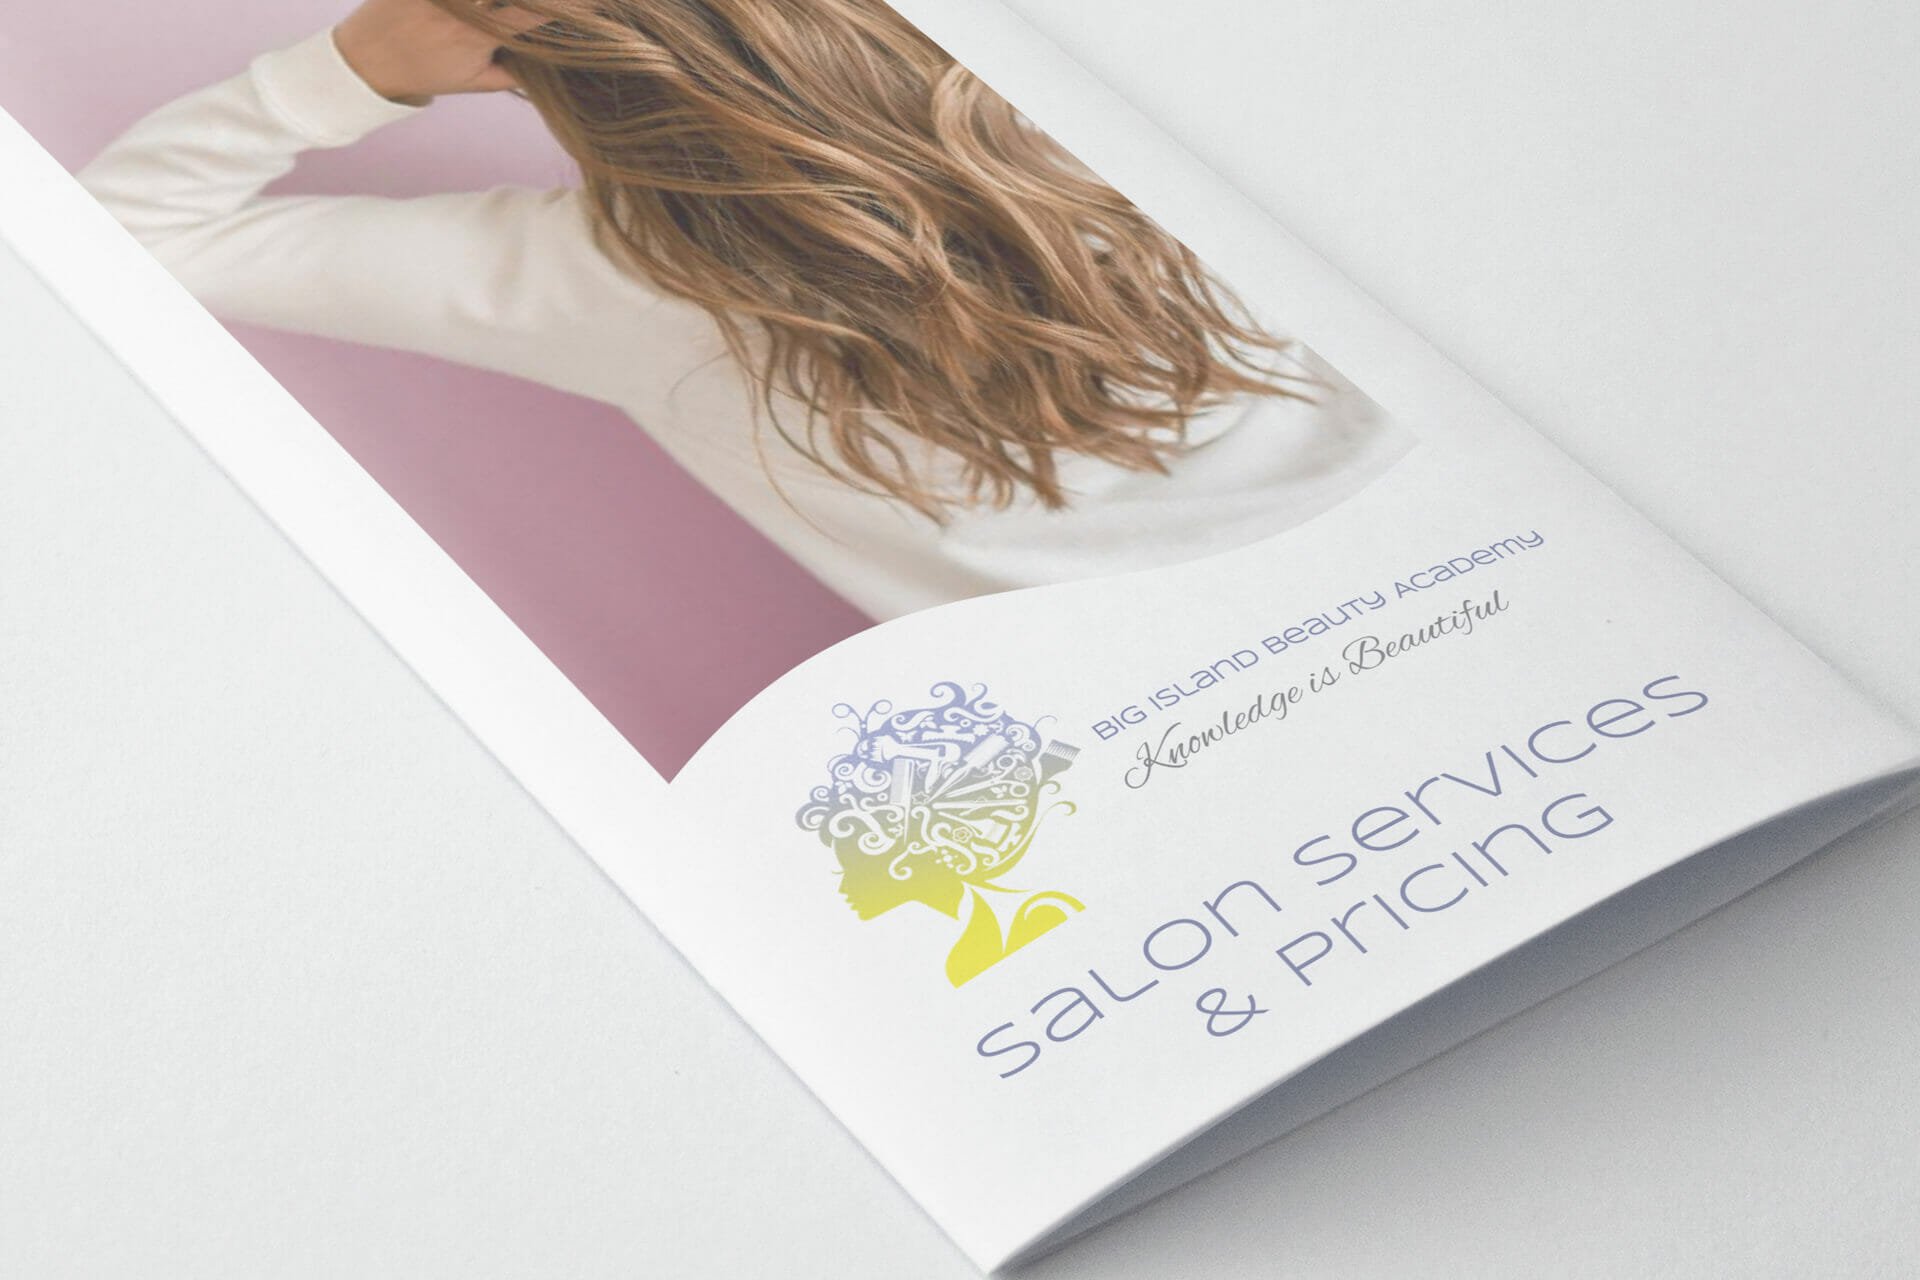 Big Island Beauty Academy — Tri-Fold Brochure